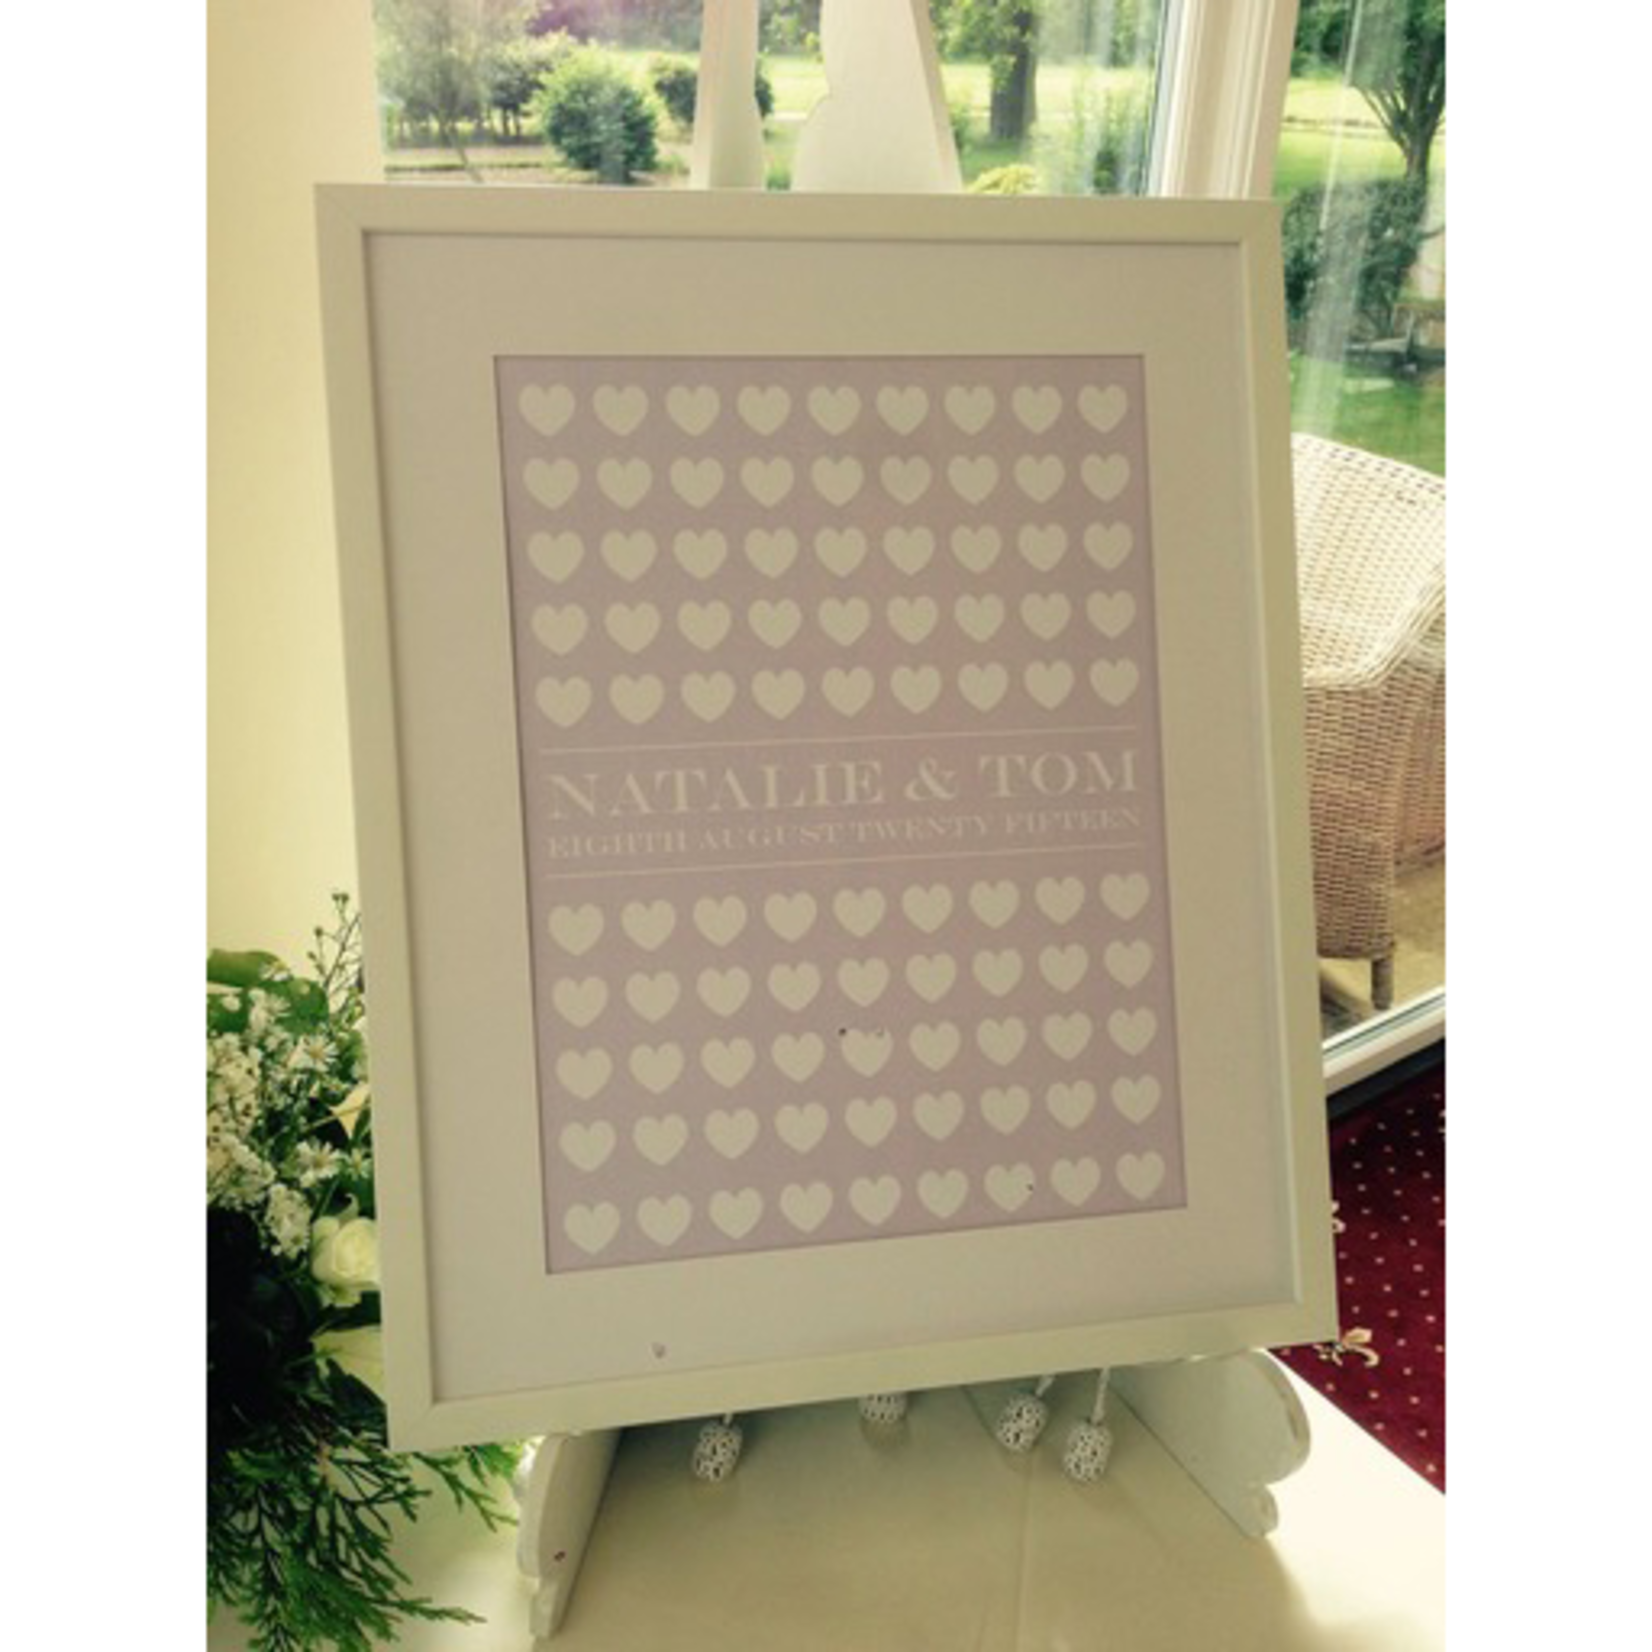 Homebird Pictures 100 Hearts Wedding Wishes Write on Heart with pens Bespoke Picture FRAME COLLECTION ONLY